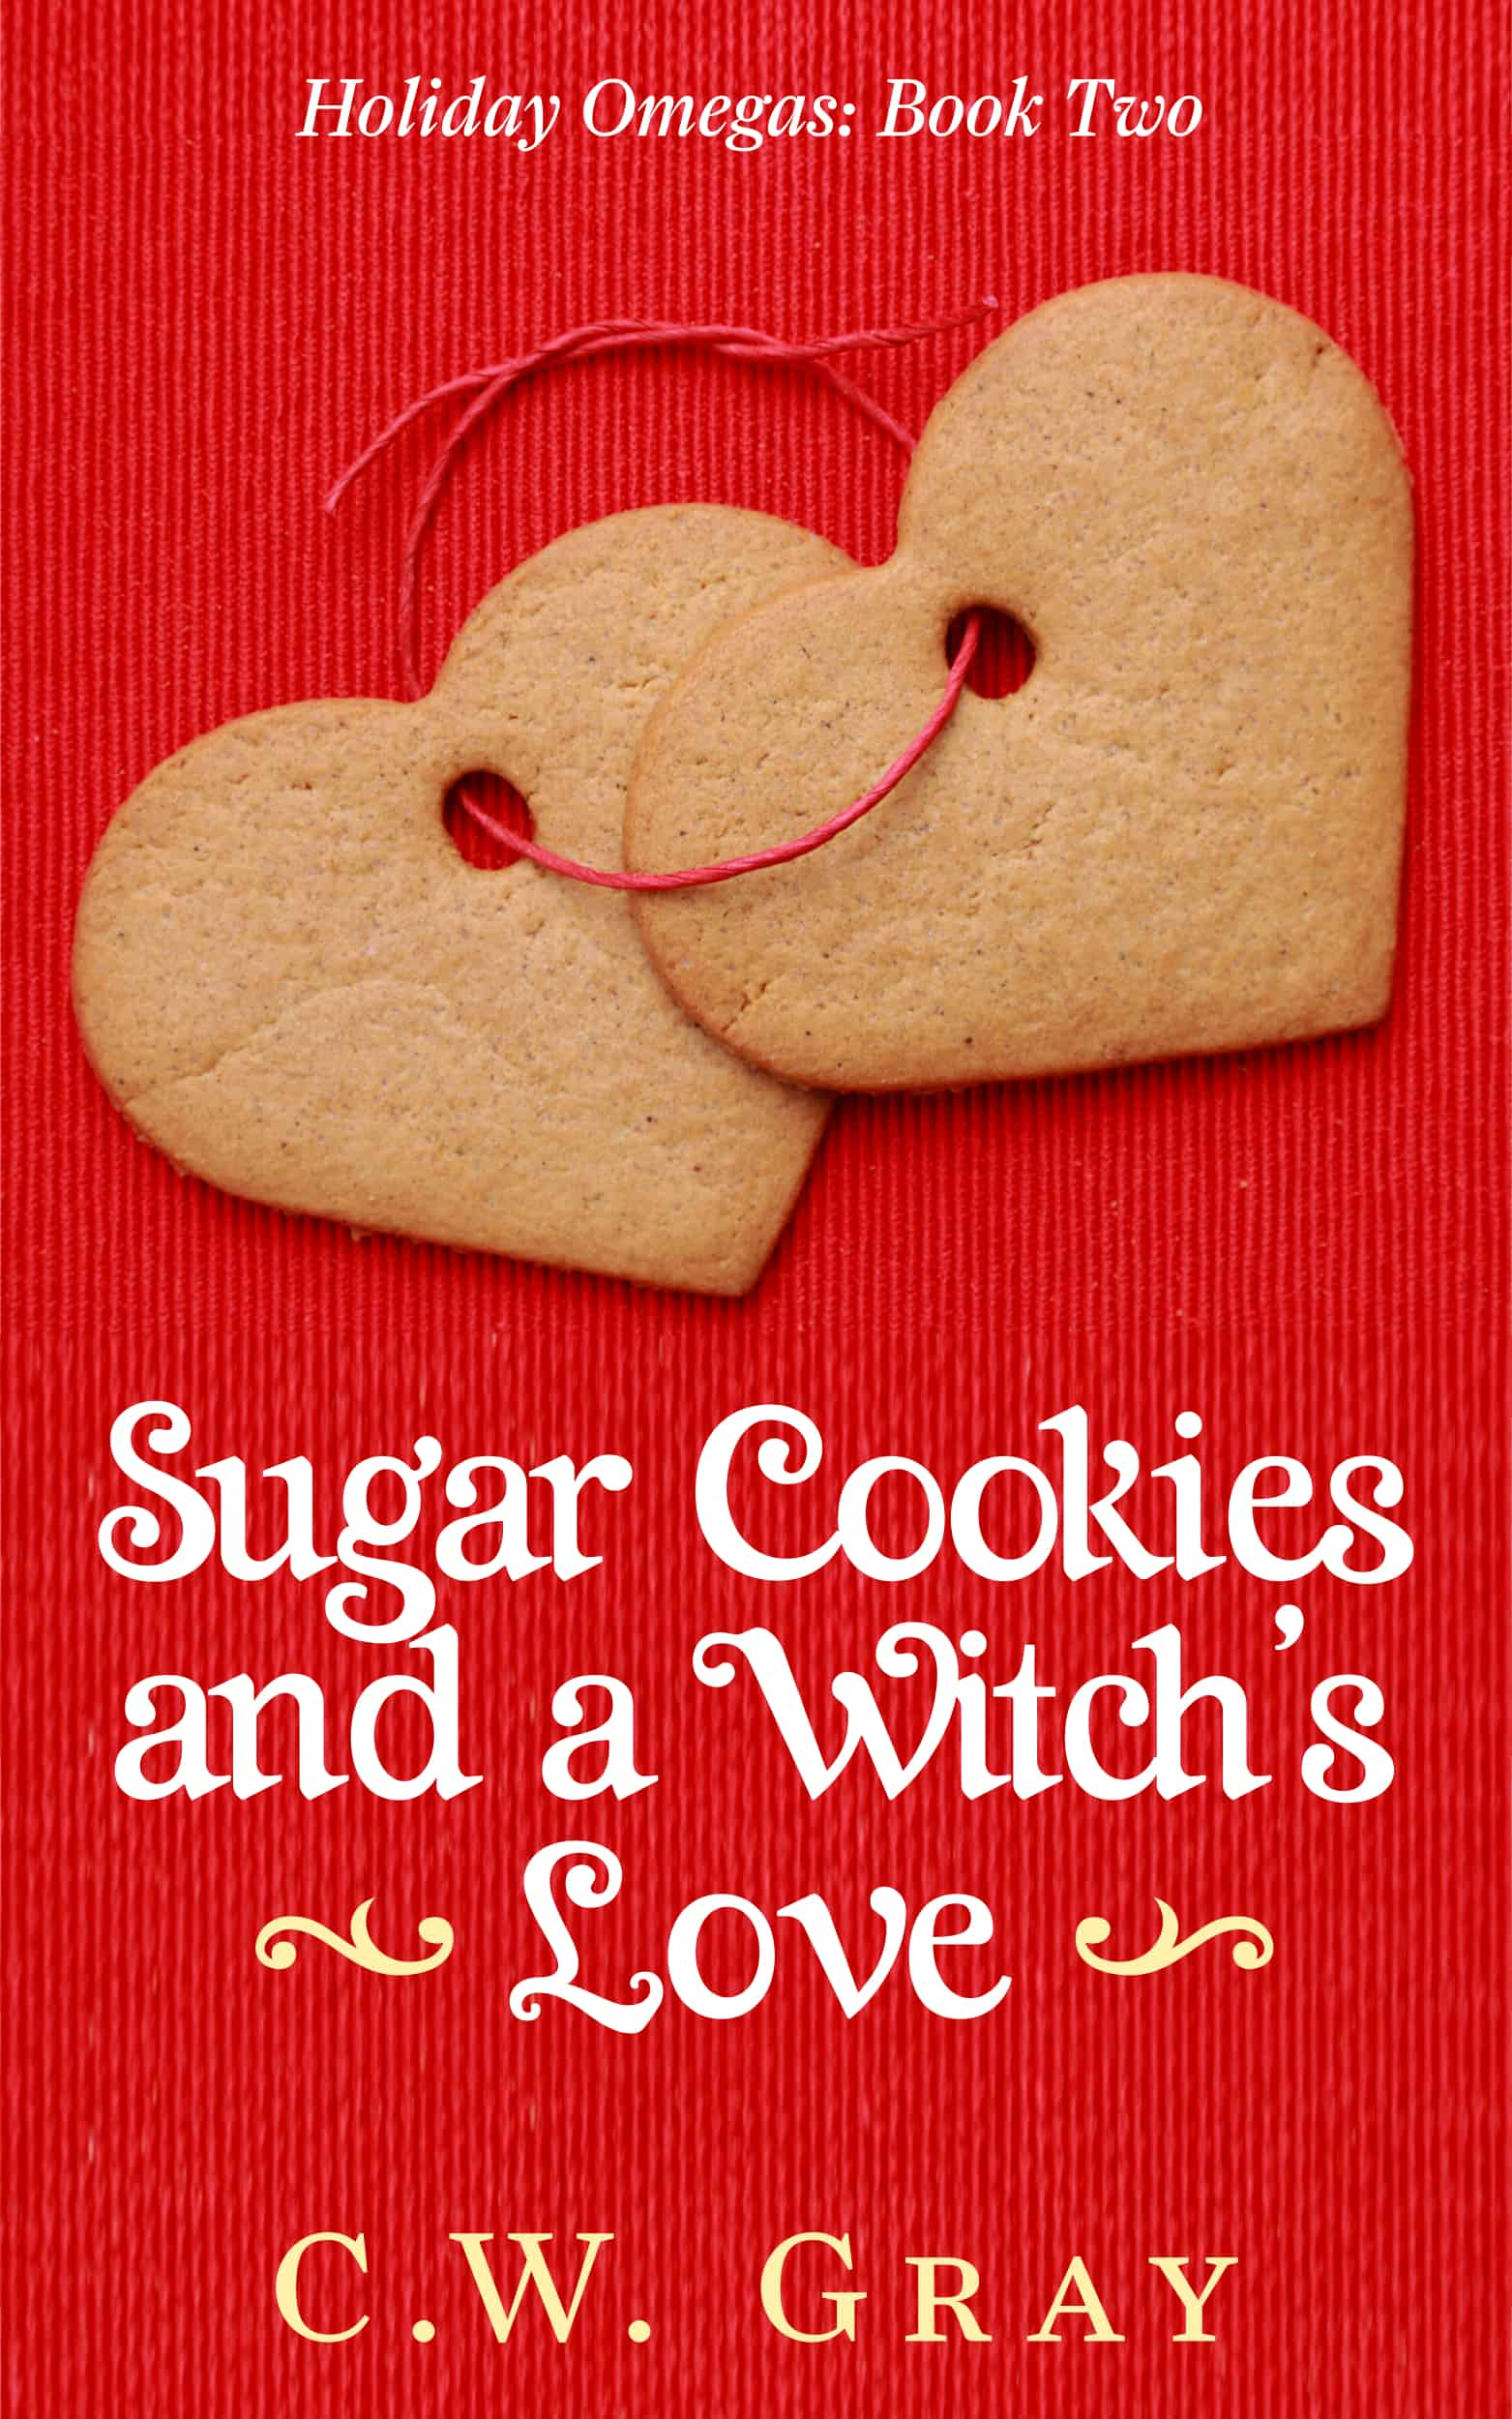 Sugar Cookies and a Witch's Love